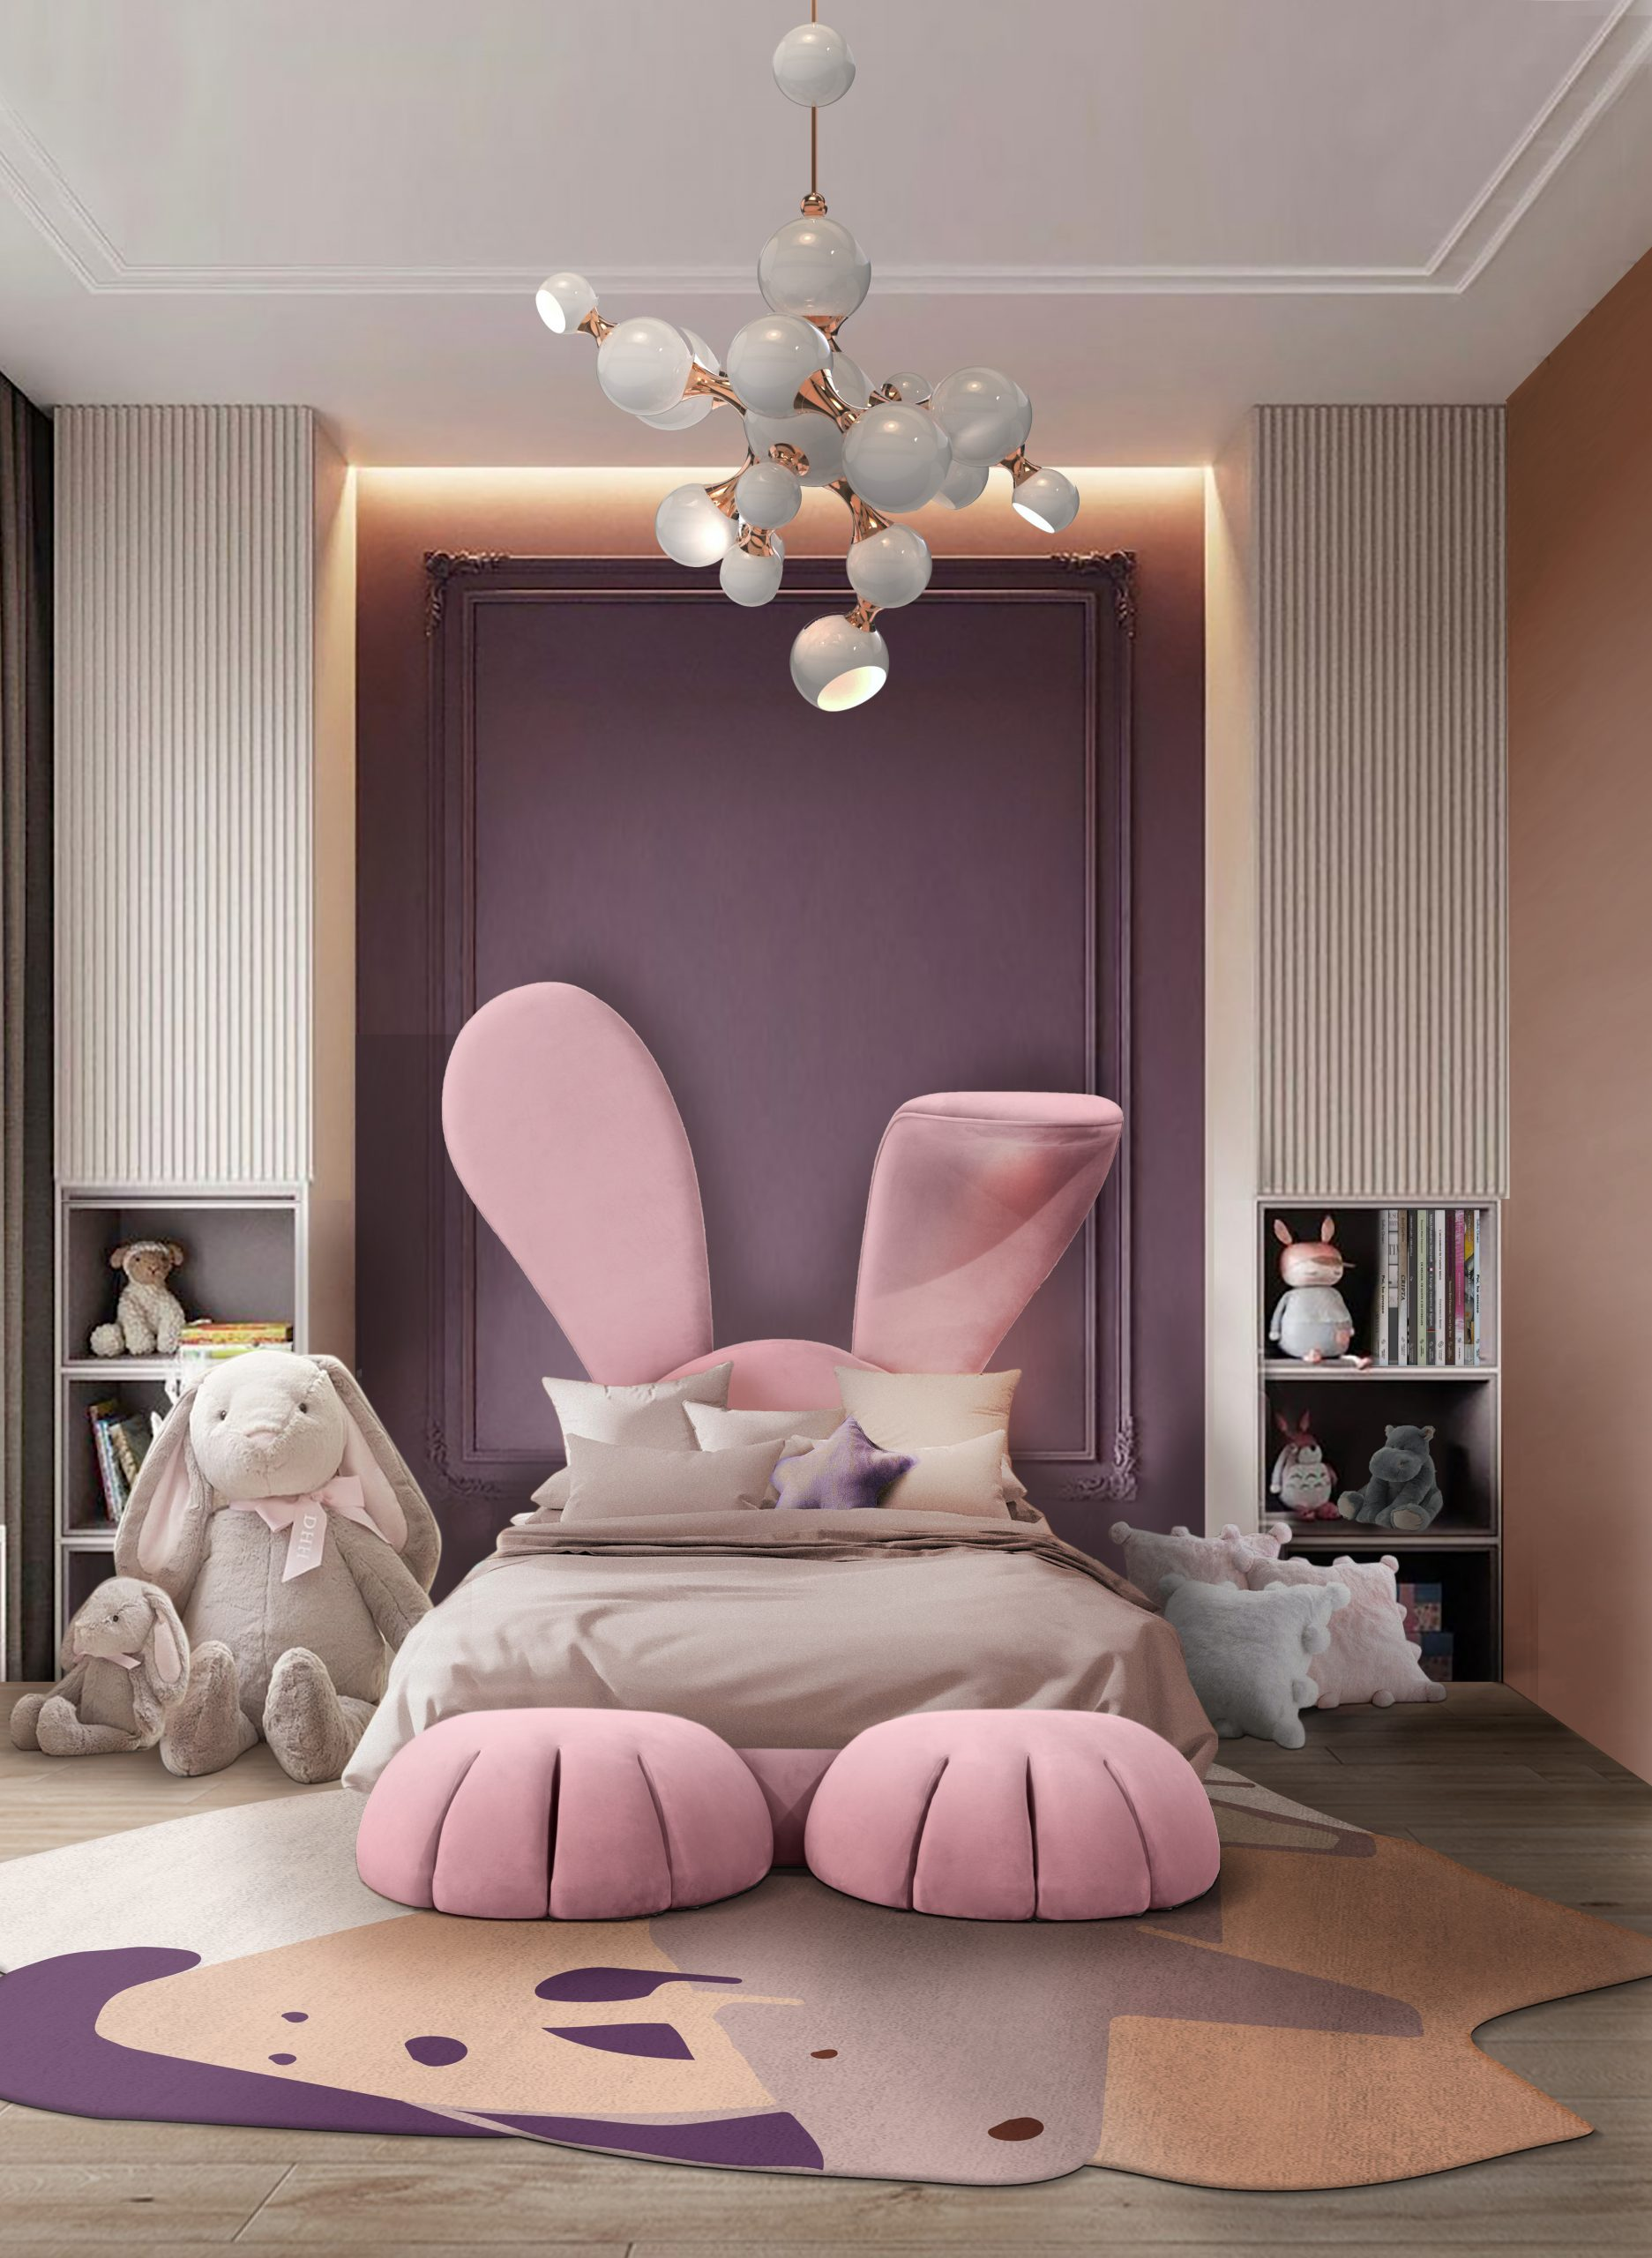 Bunny-shaped bed your kids room needs is our Mr. Bunny bed